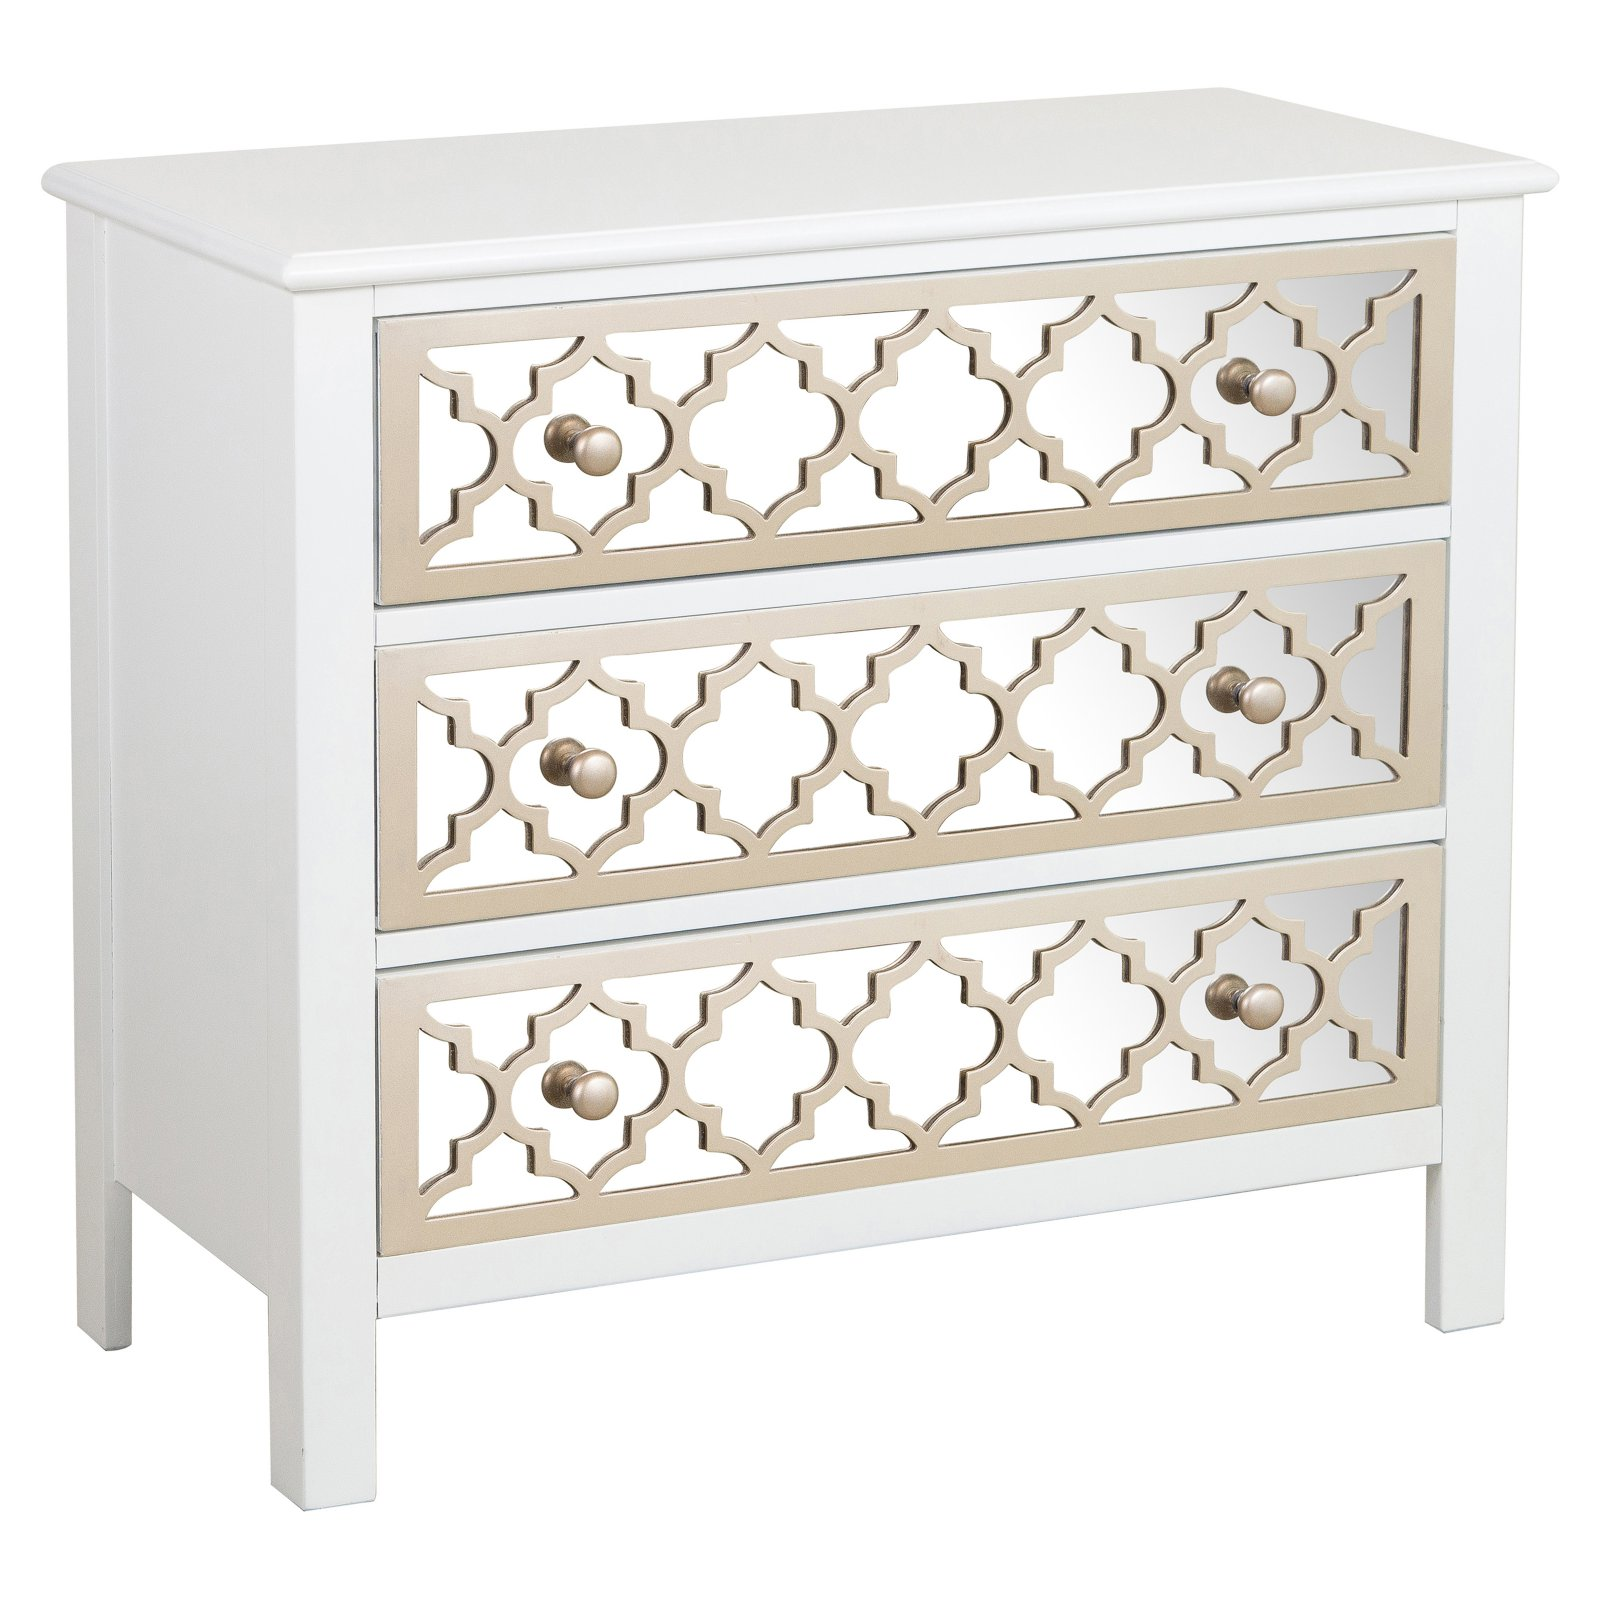 Right2Home White 3 Drawer Decorative Chest with Mirrored Drawer Front